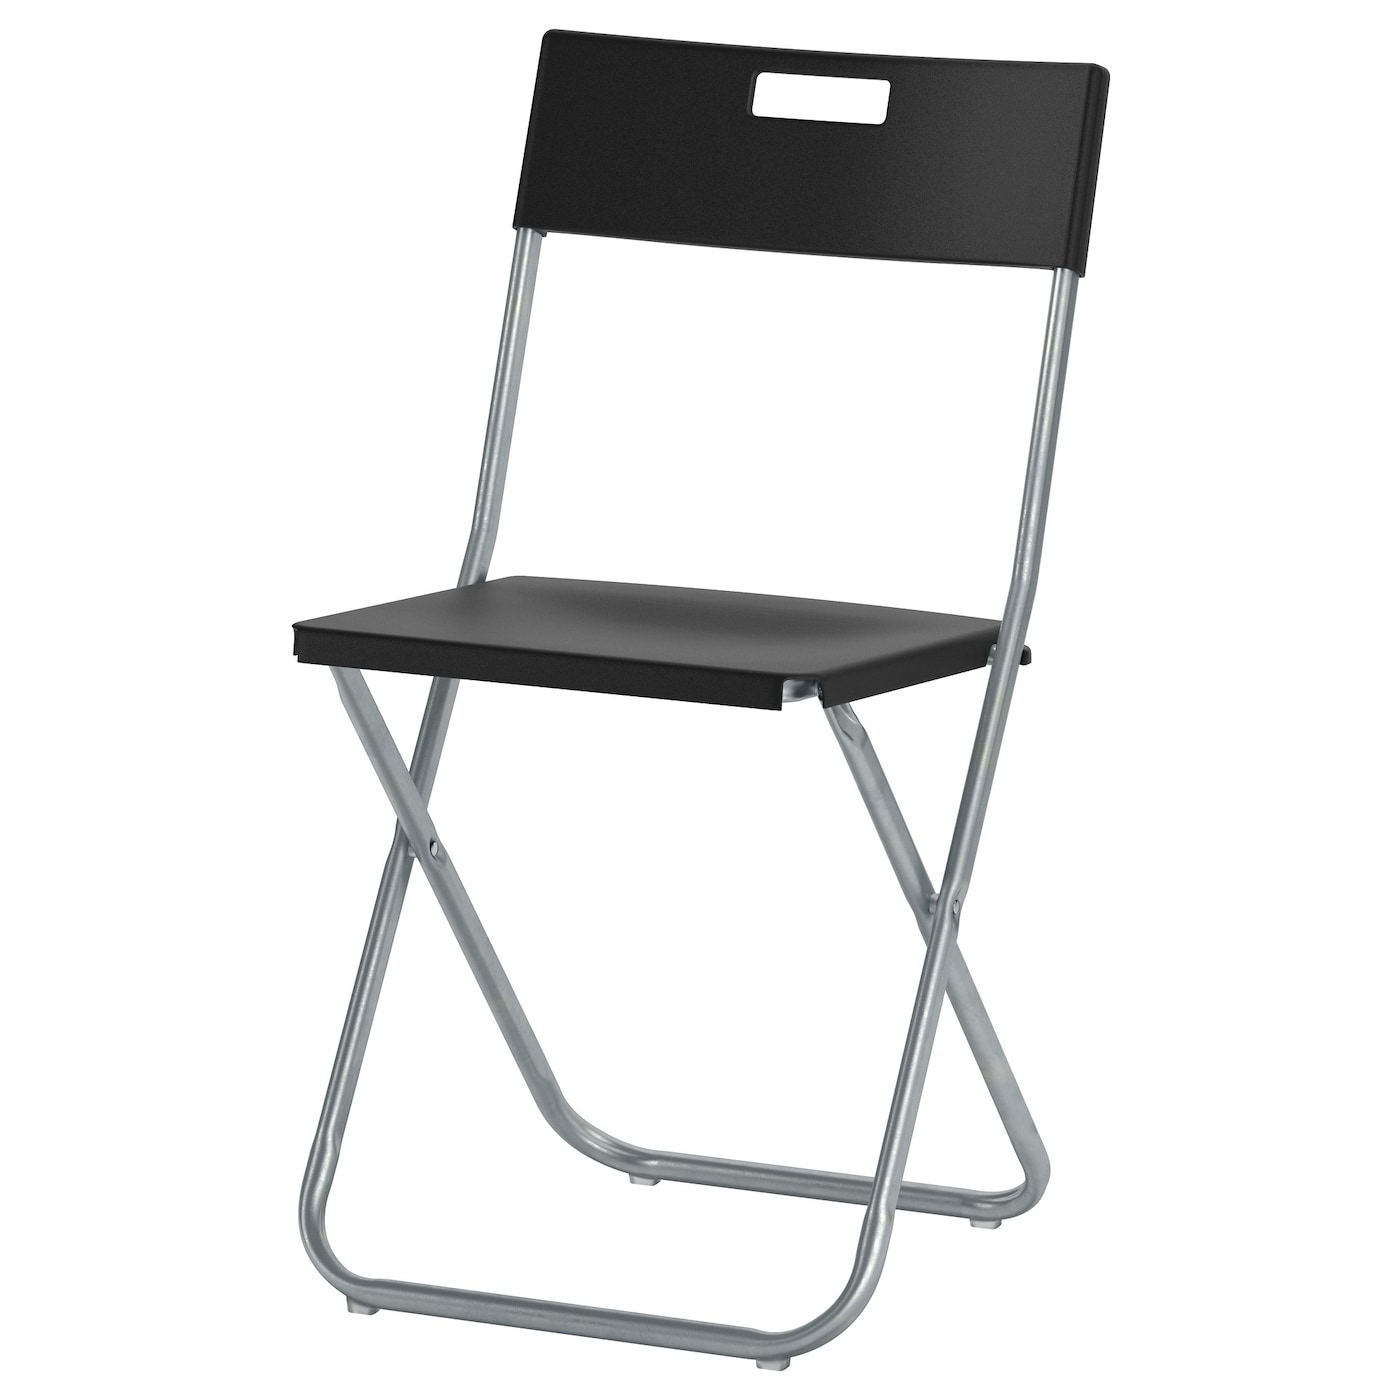 Attrayant IKEA GUNDE Folding Chair You Can Fold The Chair, So It Takes Less Space When